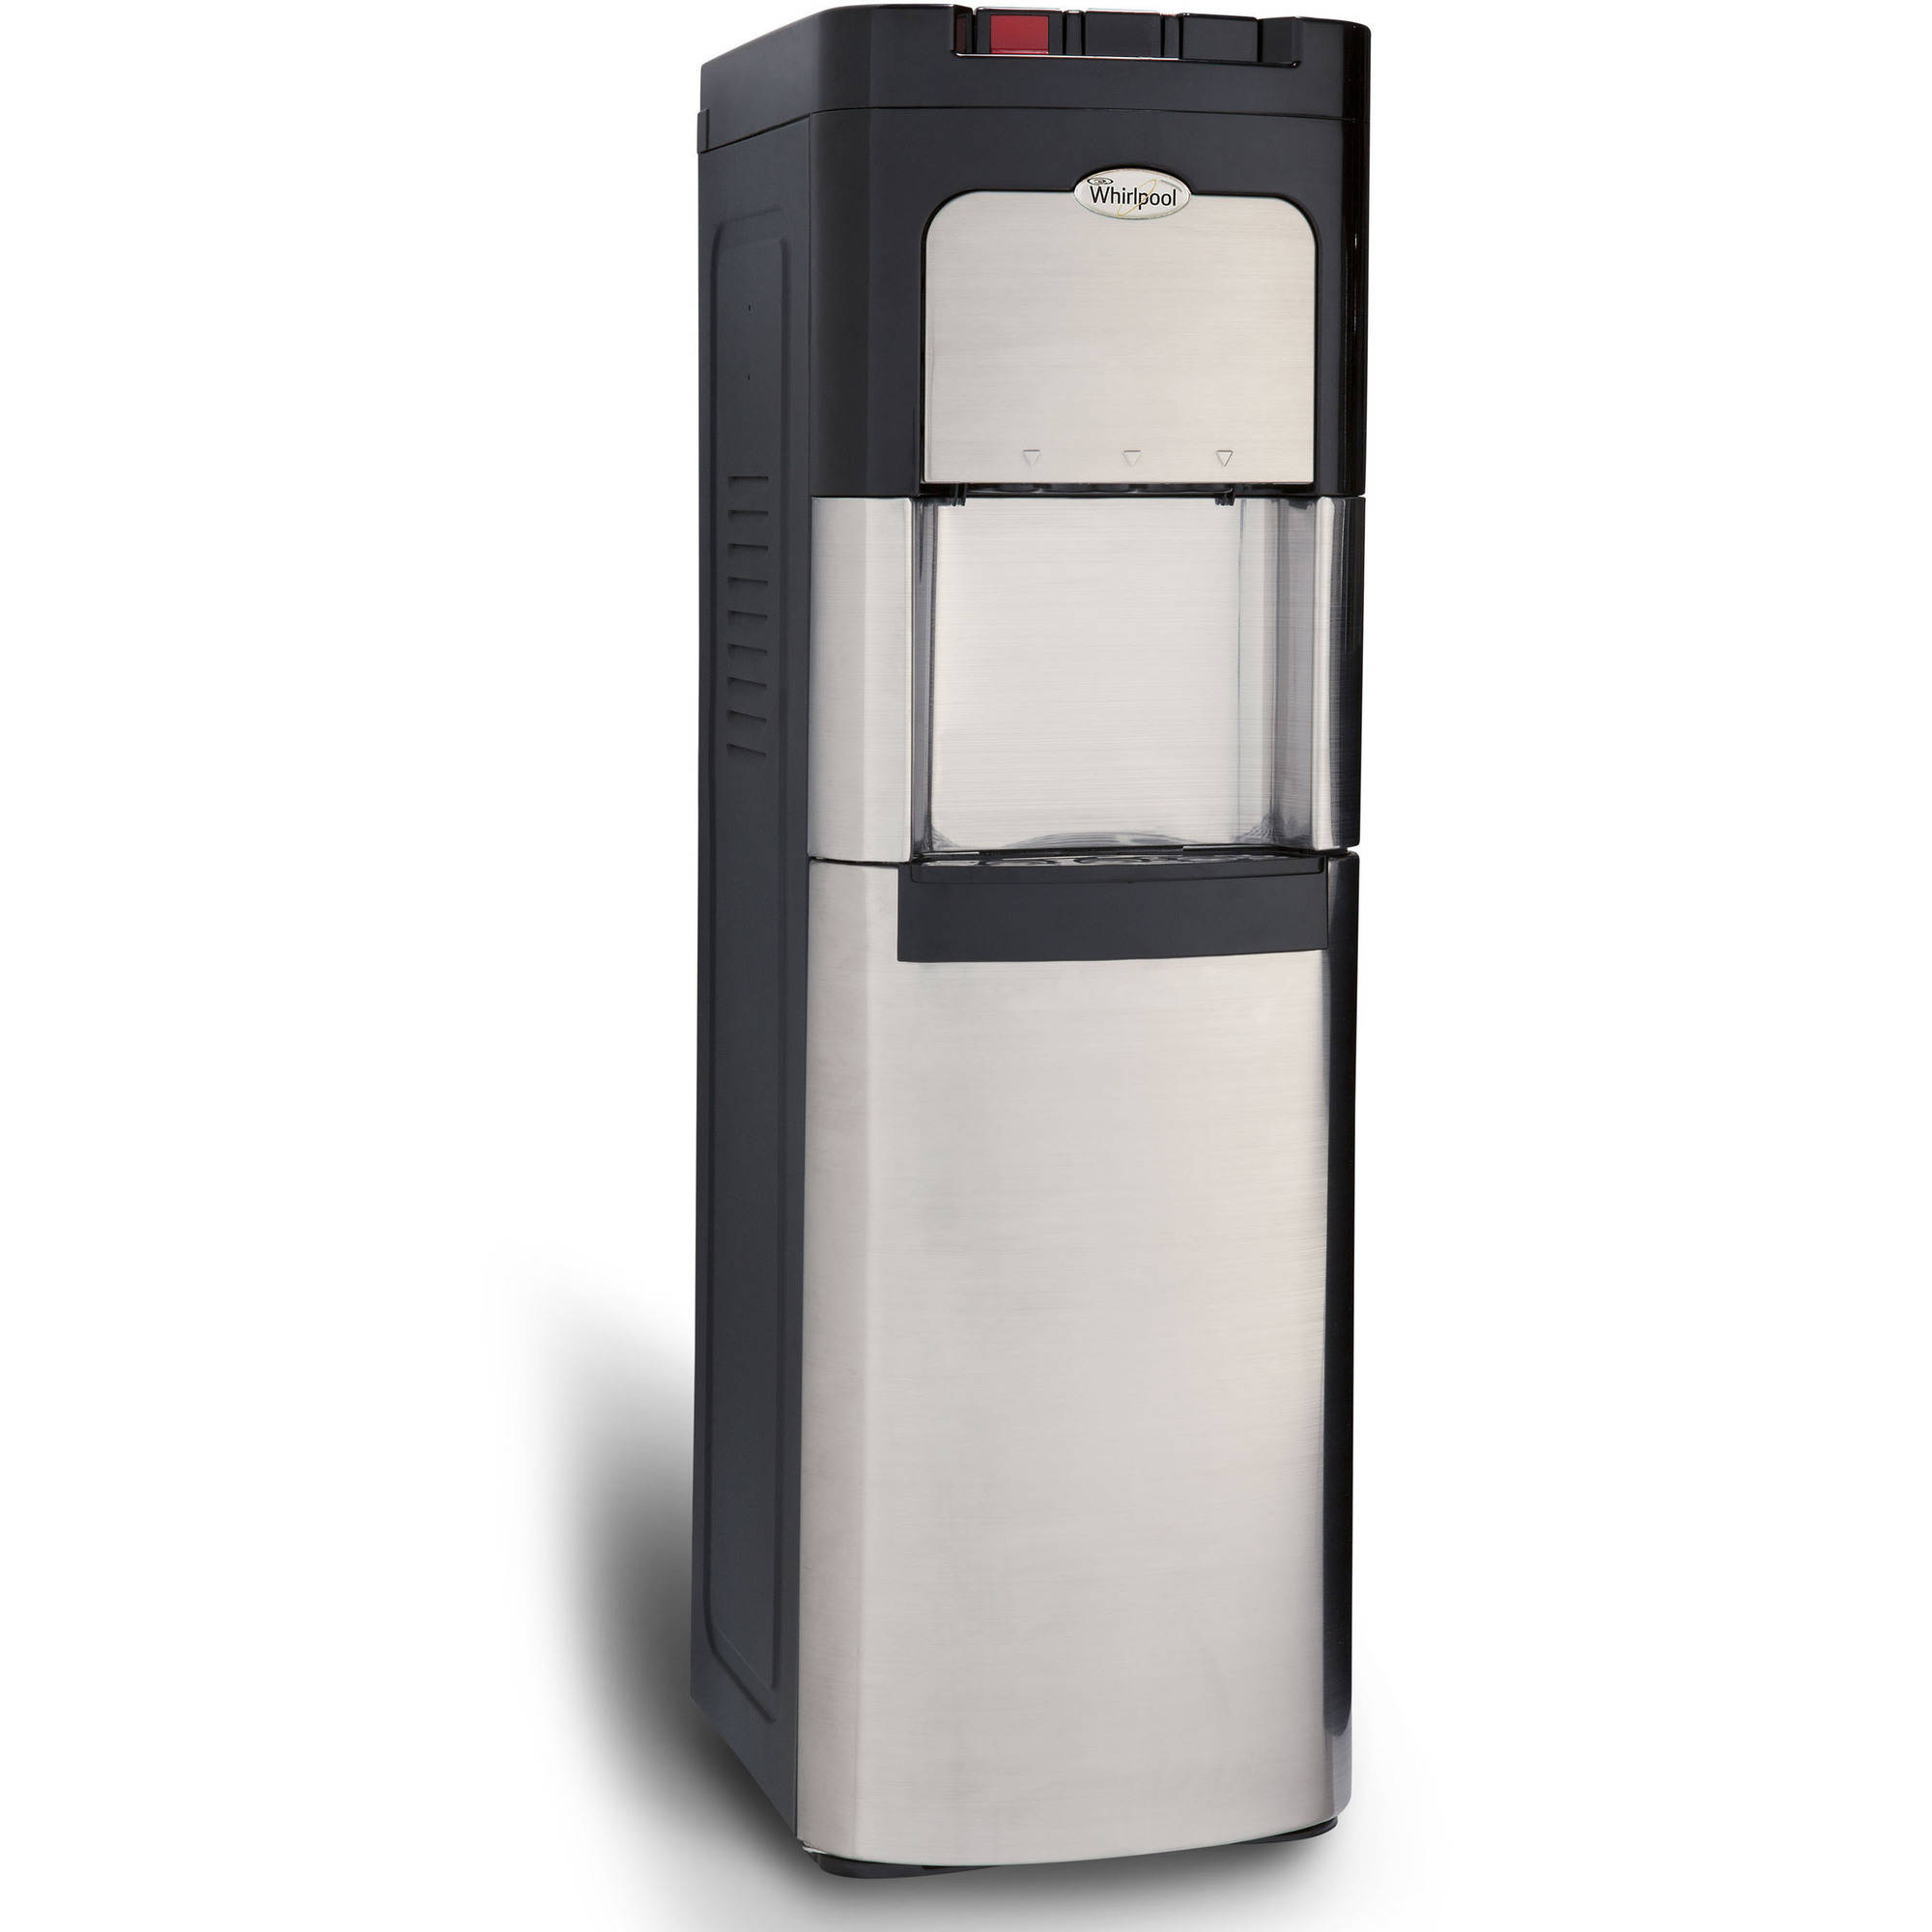 Whirlpool Stainless Steel, Bottom Loading Commercial Water Dispenser Water Cooler, with Ice Chilled Water Cooling Technology and Steaming Hot Water